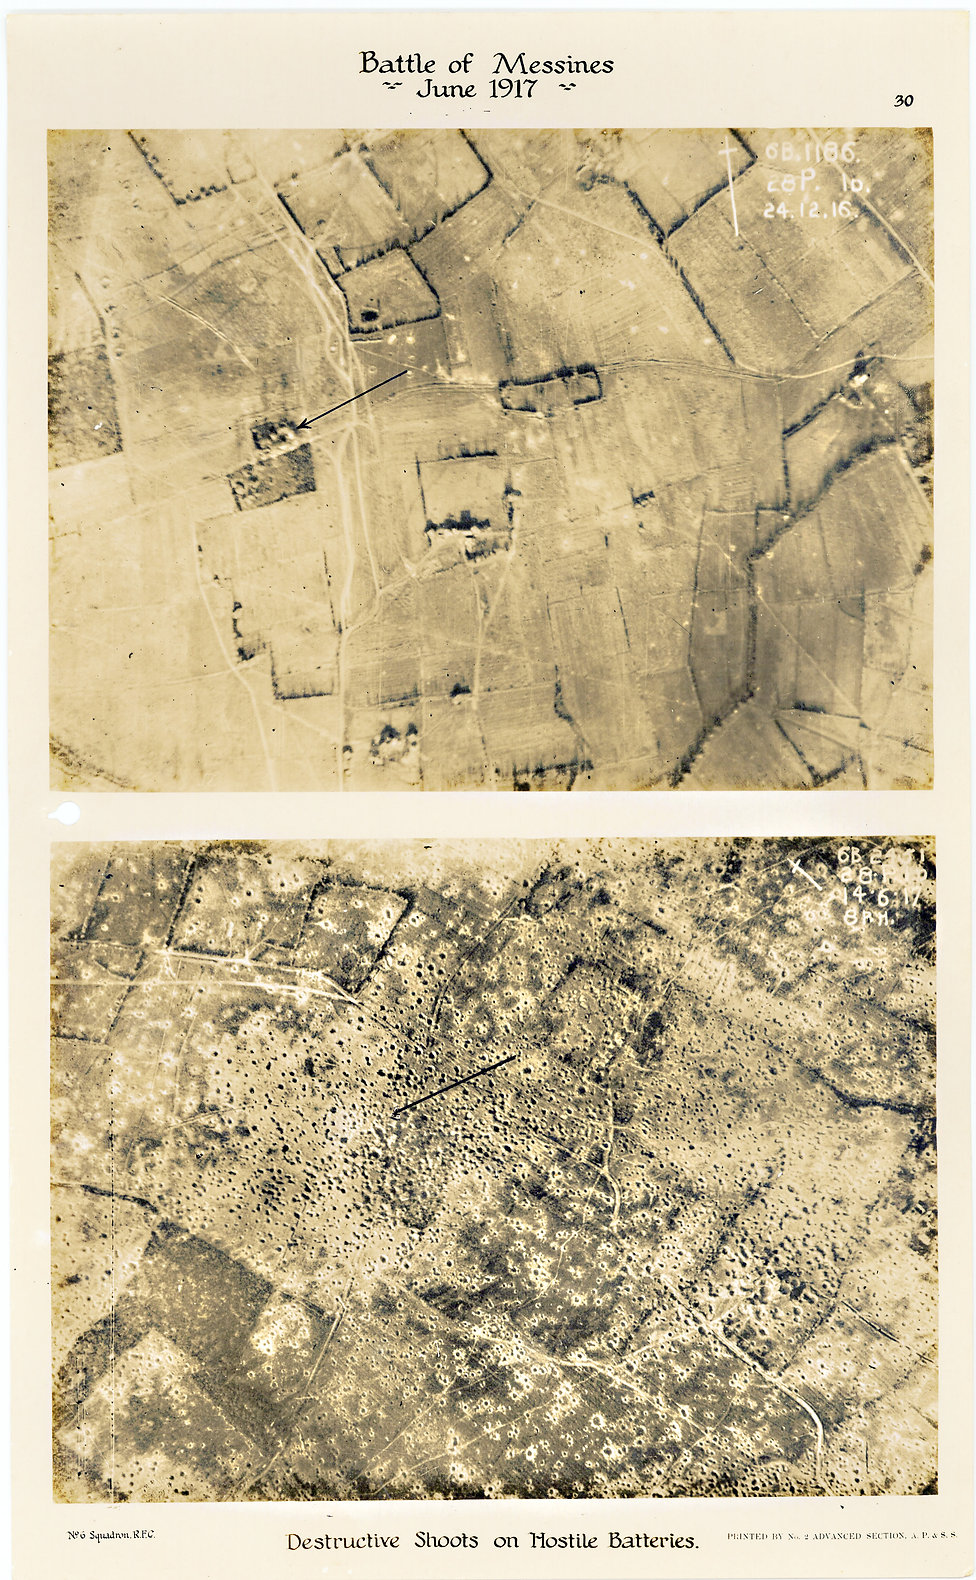 6 Squadron aerial photos of destructive shoot south of Zandvoorde, taken by 6 Squadron before and after the Battle of Messines, 1917